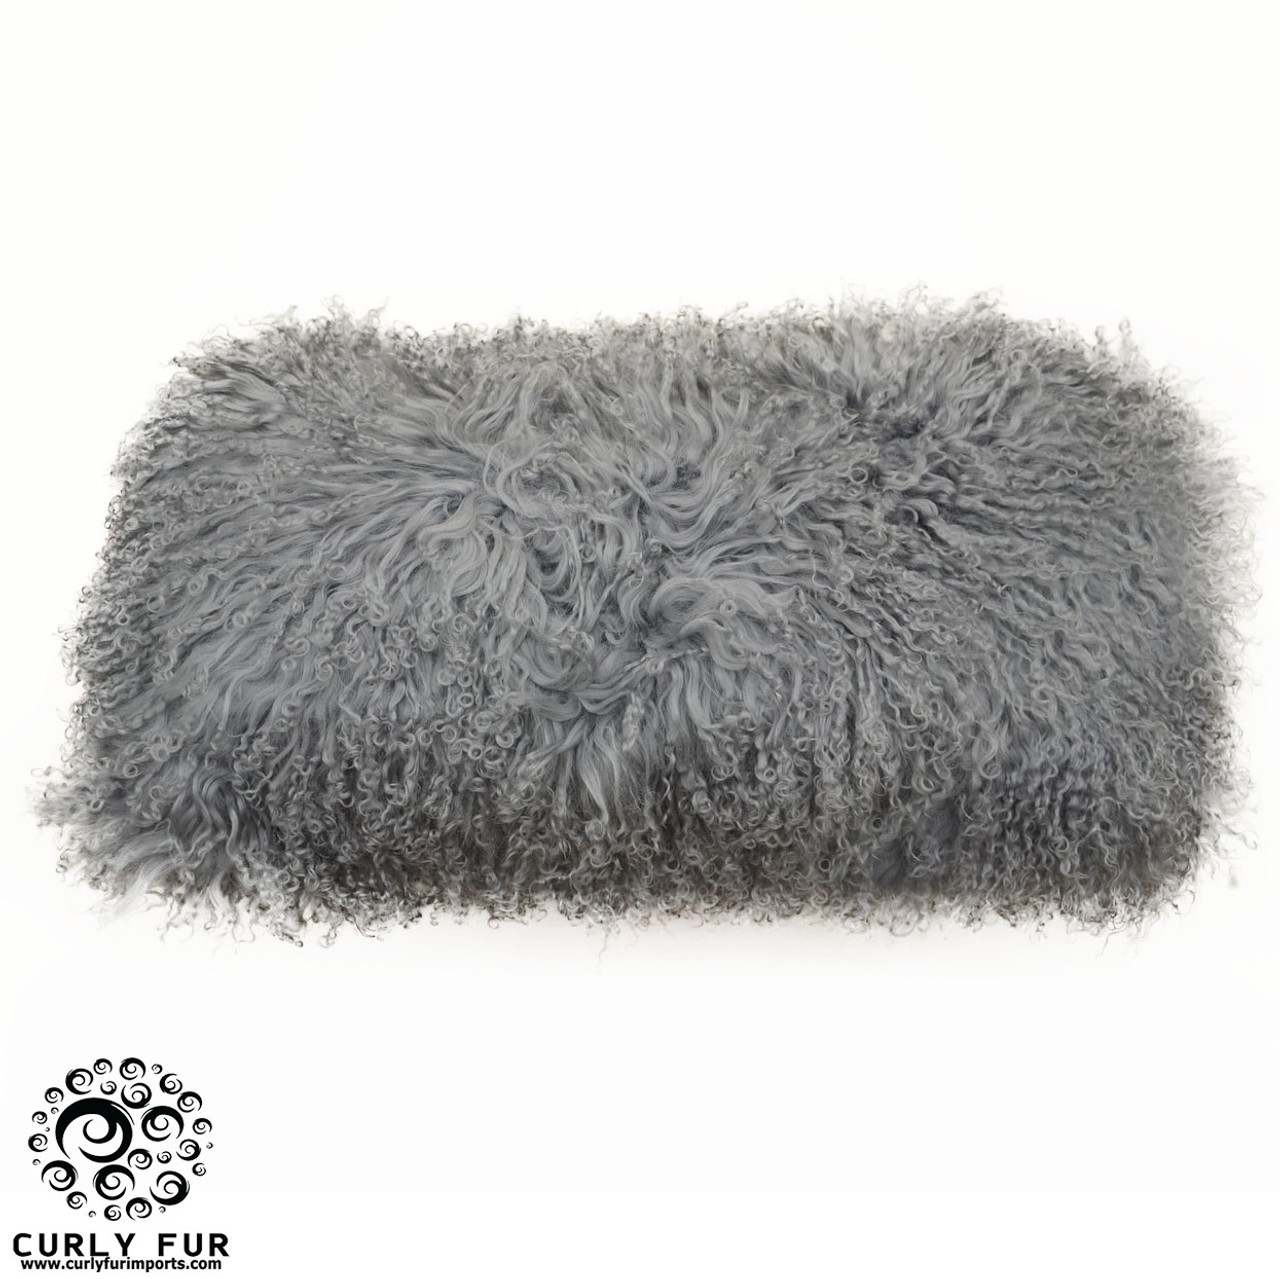 curly fur imports